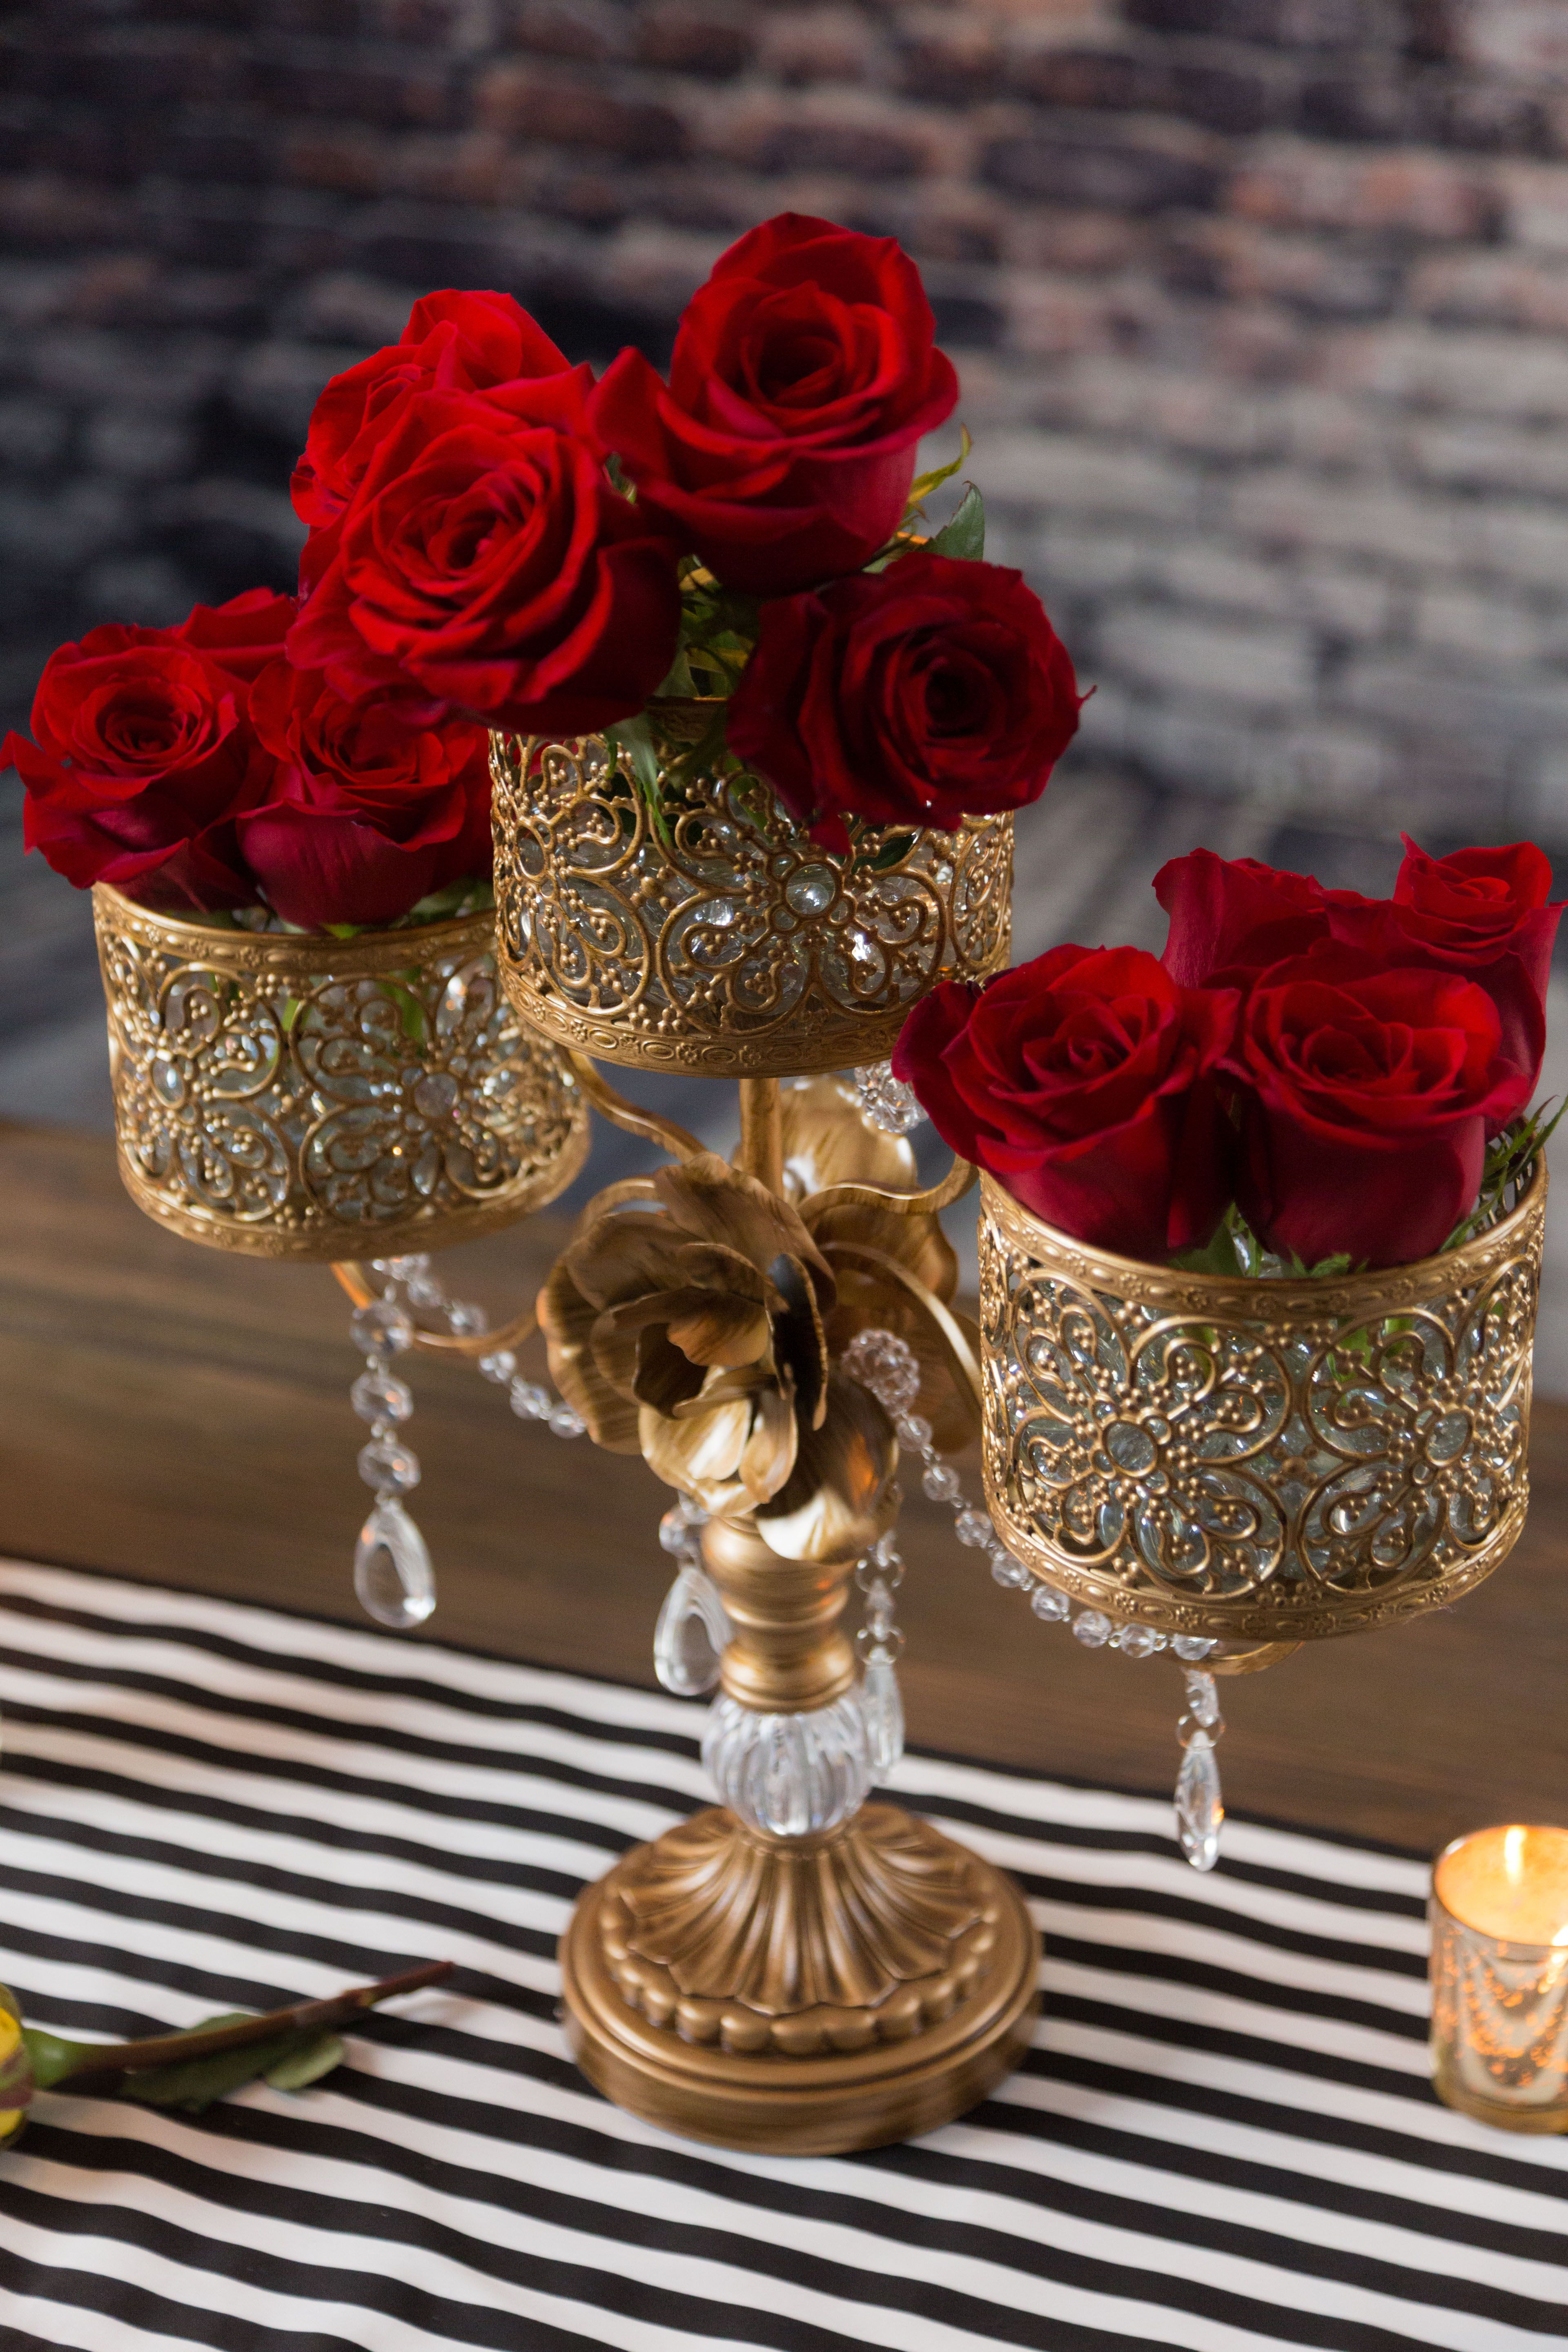 This Antique Gold 3 Pillar Candle Holder From Amalfi Decor Is